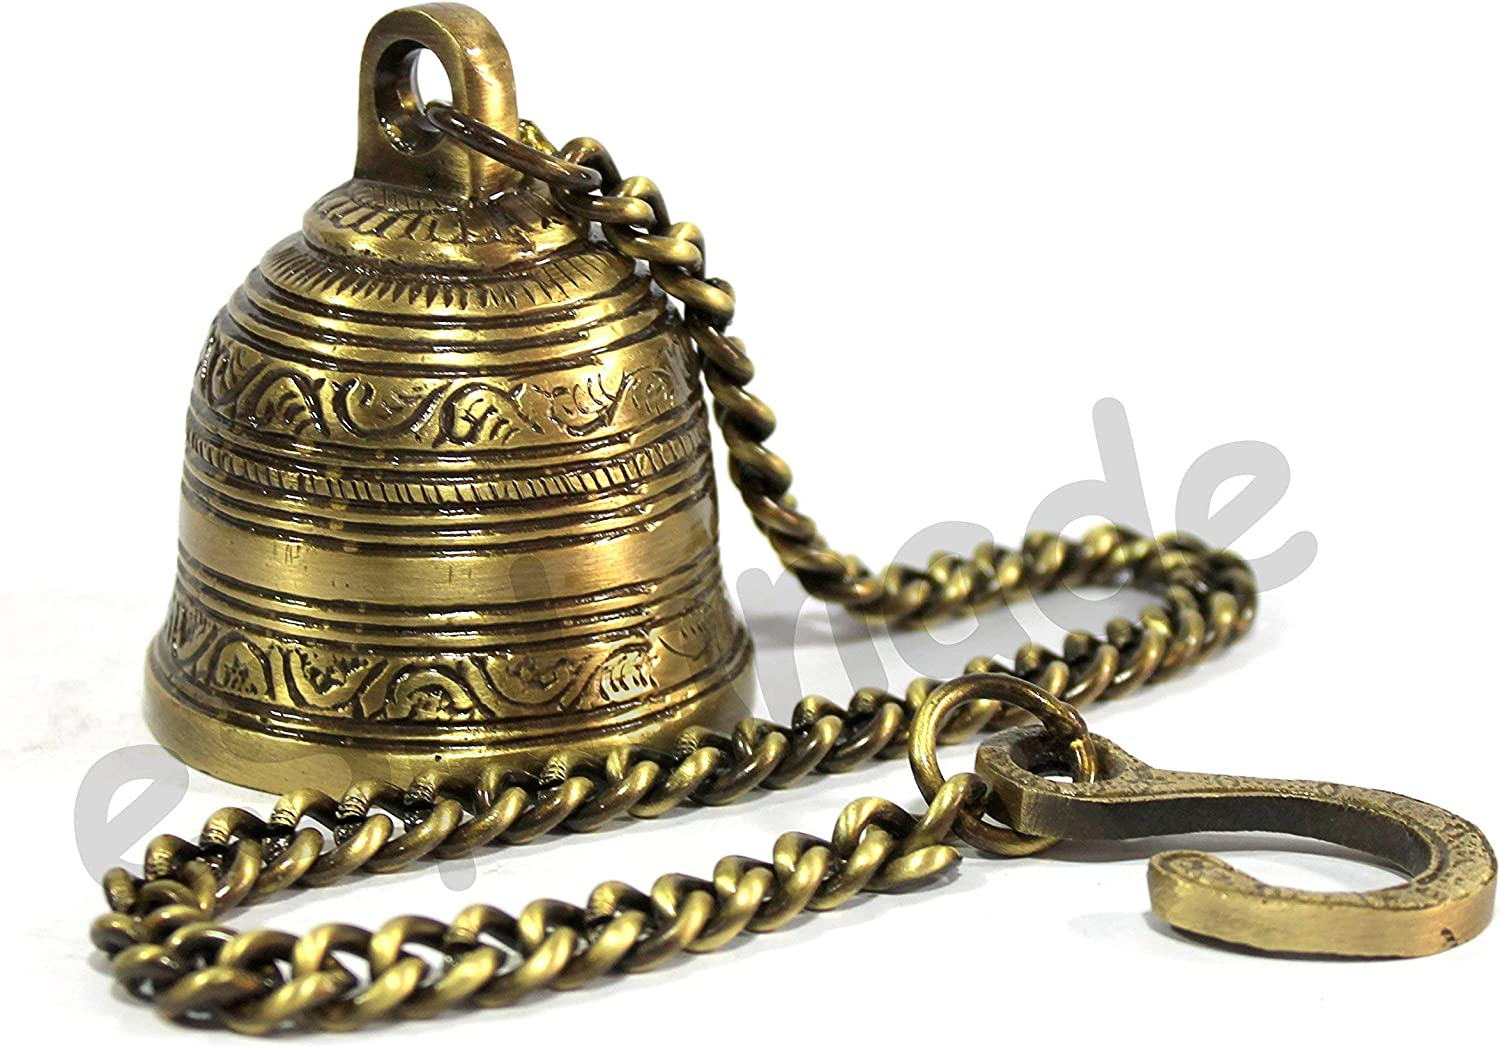 eSplanade - Ethnic Indian Handcrafted Brass Temple Bell with Chain   Brass Hanging Bell   Home Decor   Door Decor   Pooja Accessories